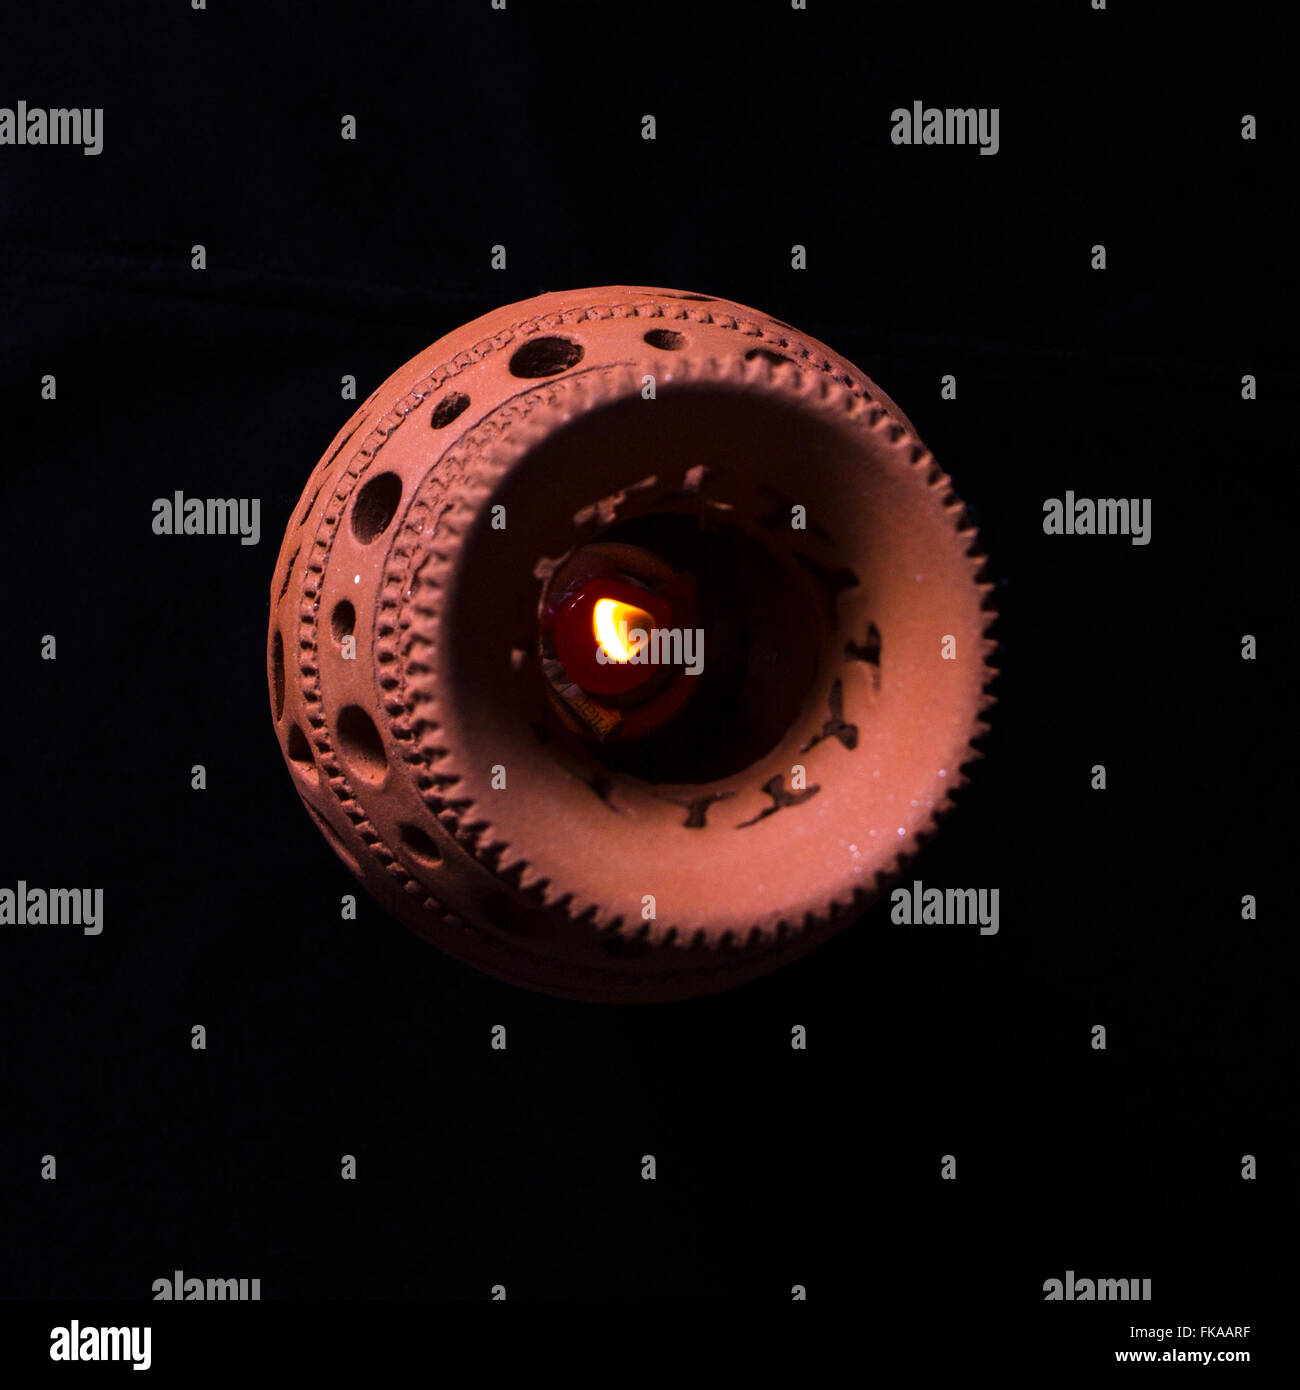 craft lamp with a lit candle inside on black background Stock Photo